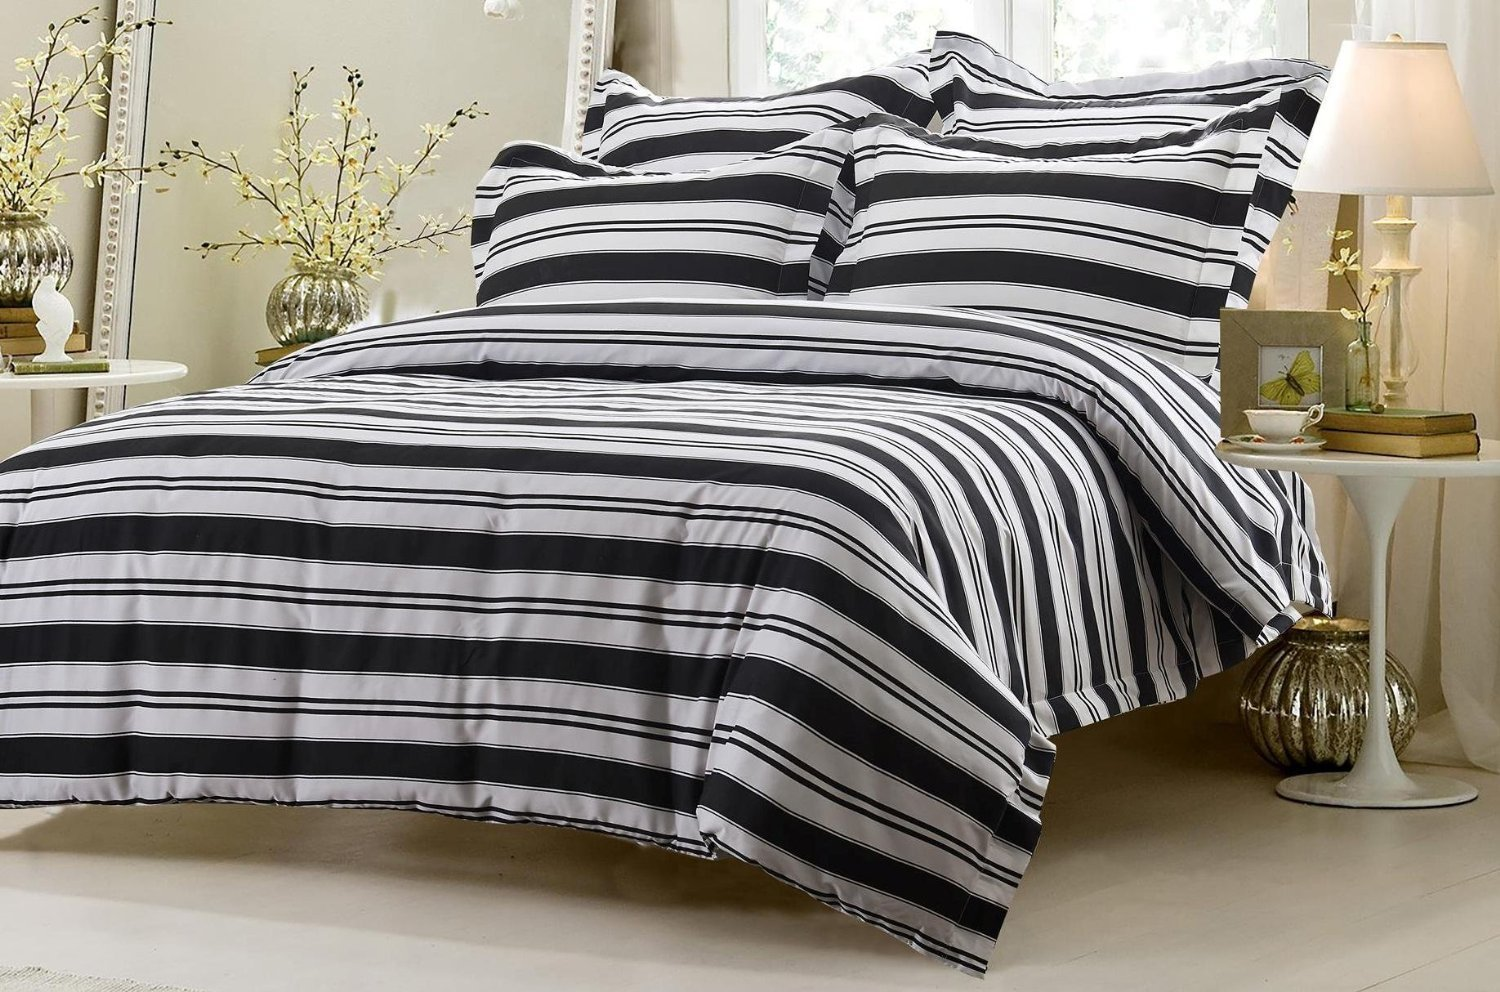 Black and white striped bed sheets - 6pc Black And White Striped Bedding Set